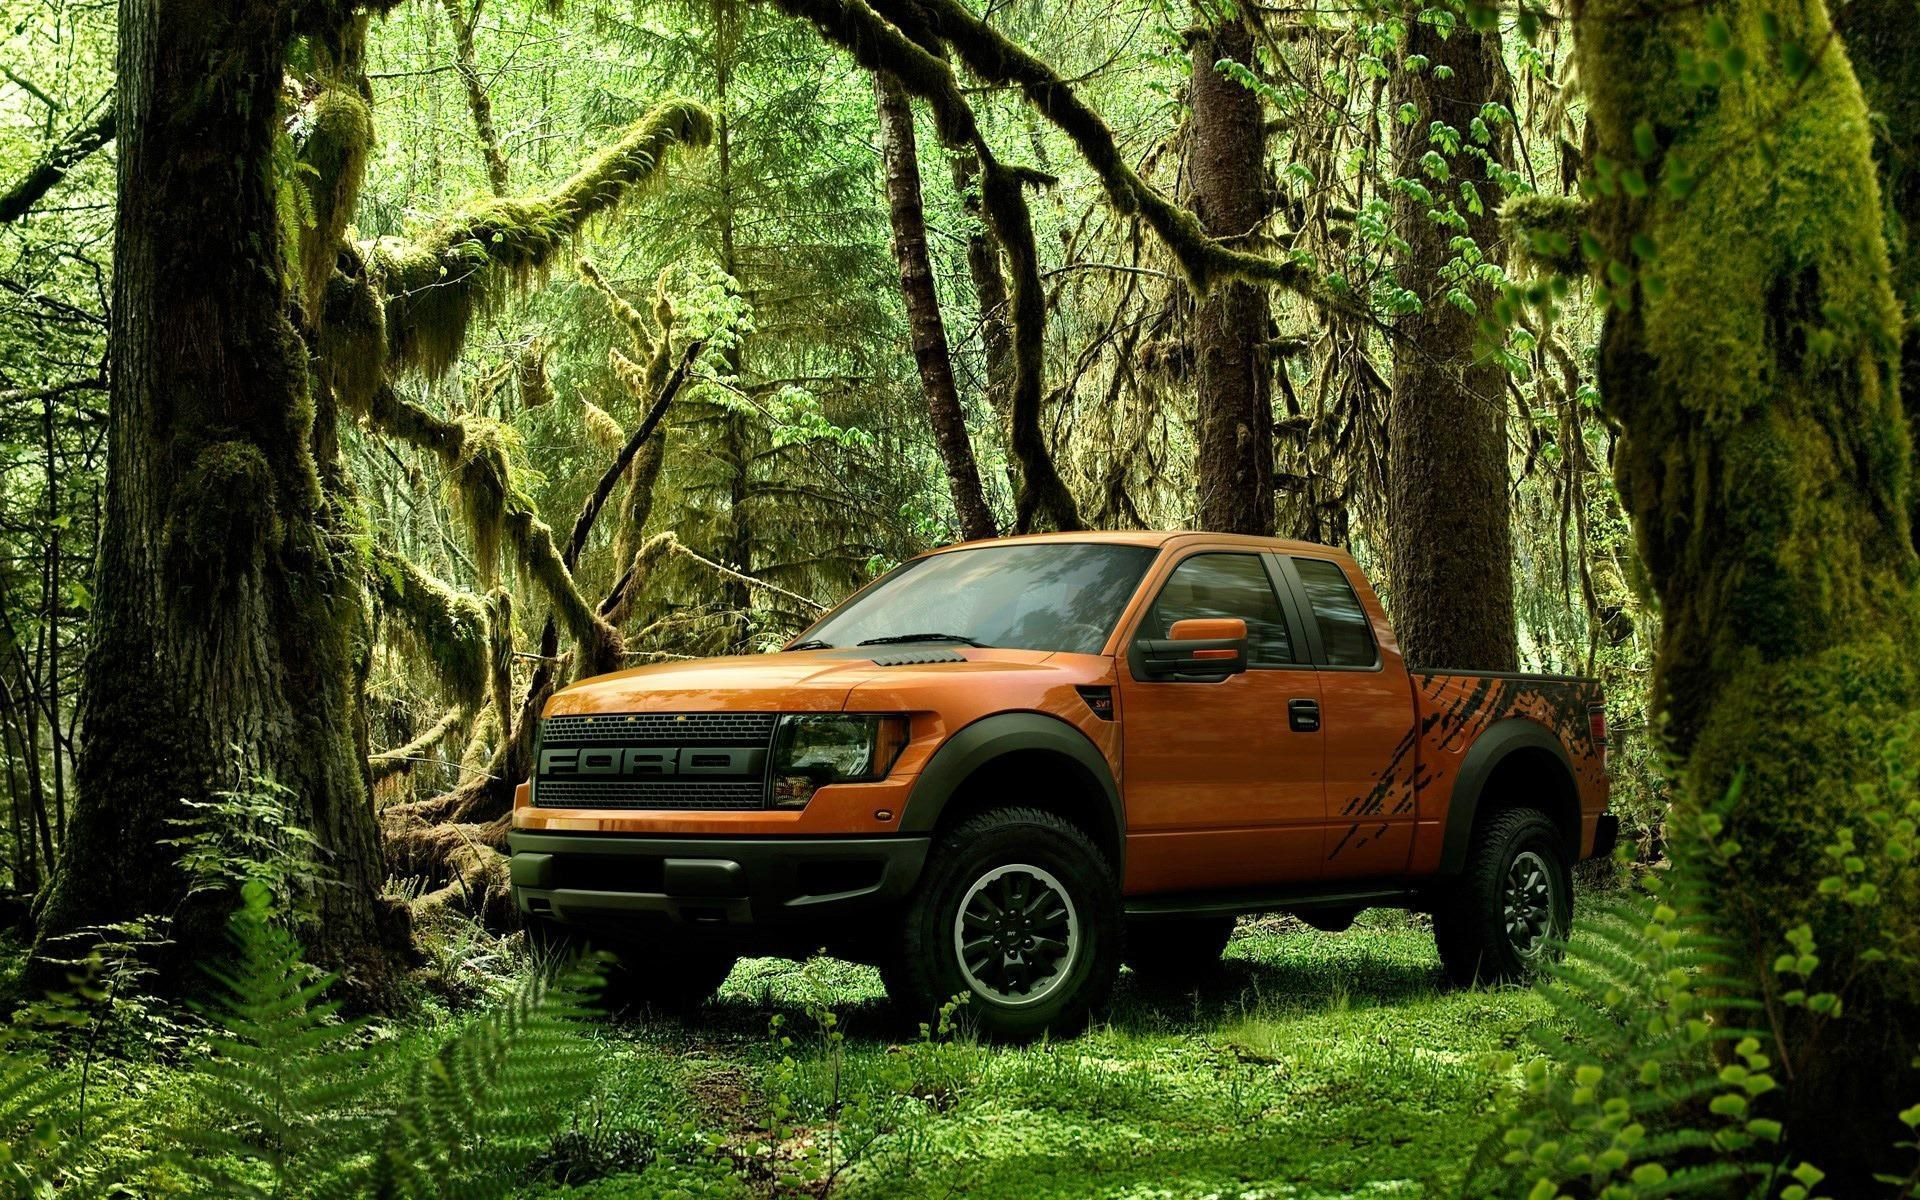 ford-raptor-1080p-high-quality-1920x-wallpaper-wpc9005086